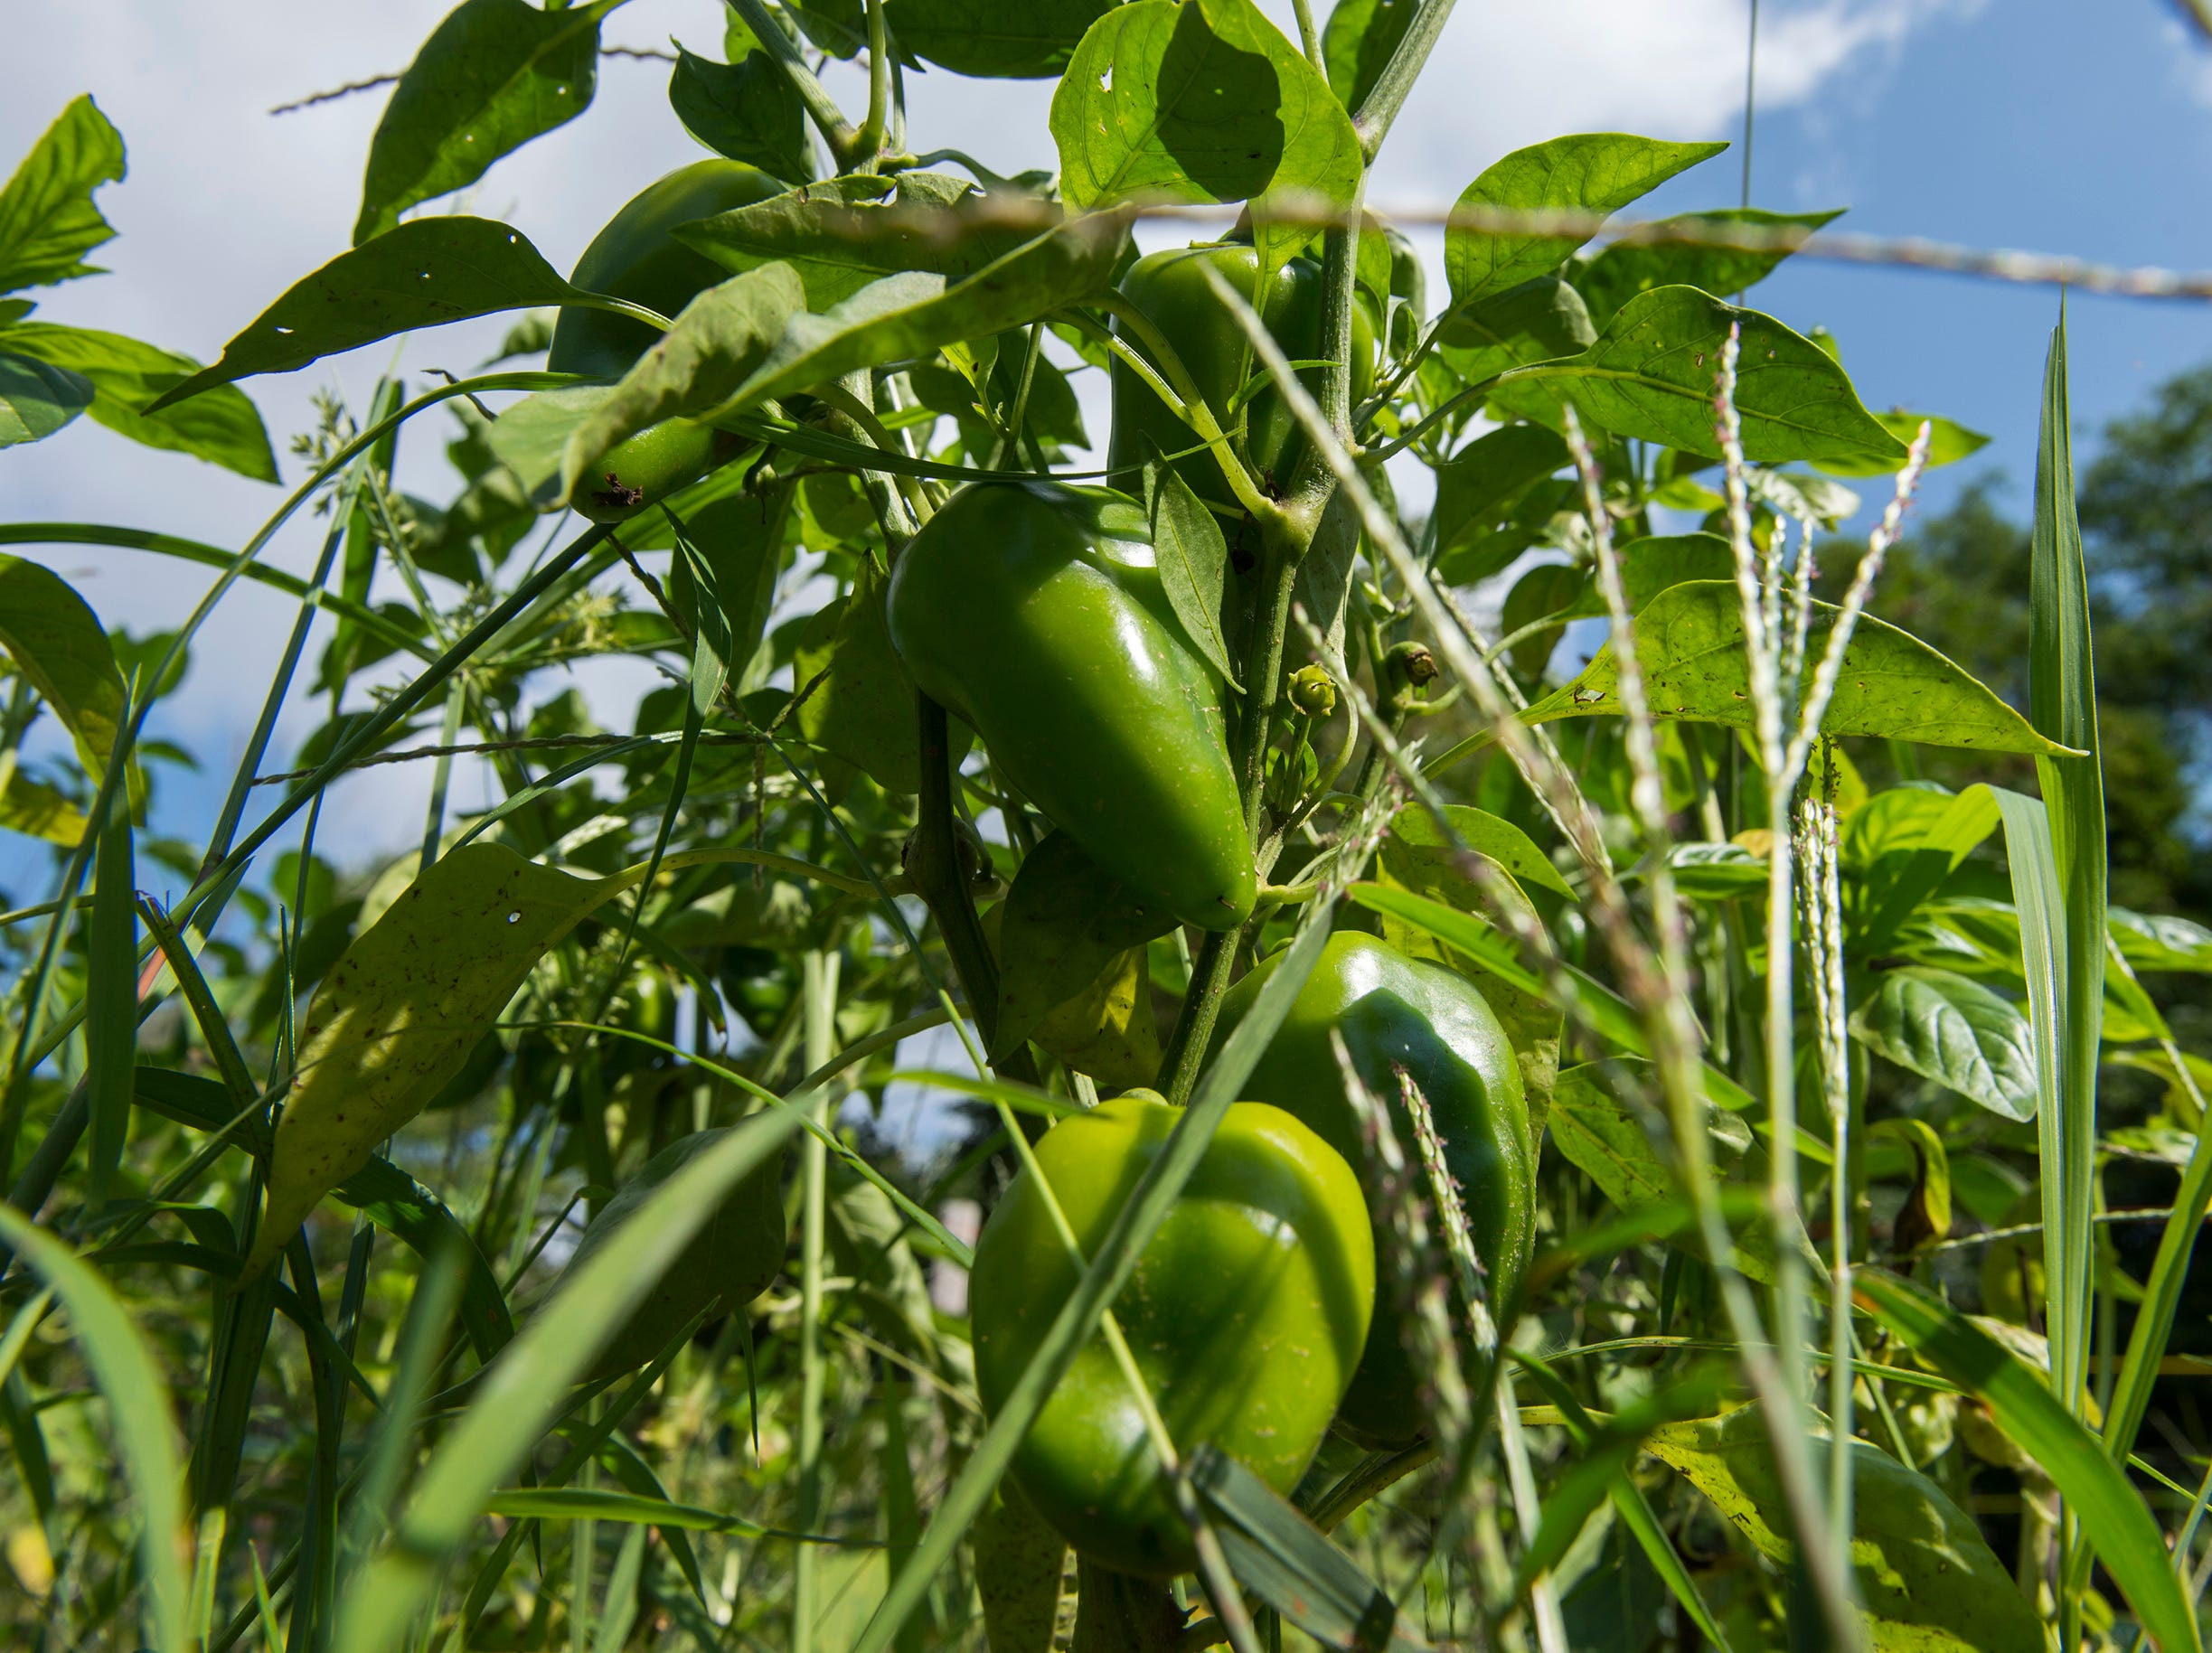 Peppers grow at Free Haven Farms Thursday, Aug. 23, 2018 in Lawnside, N.J.